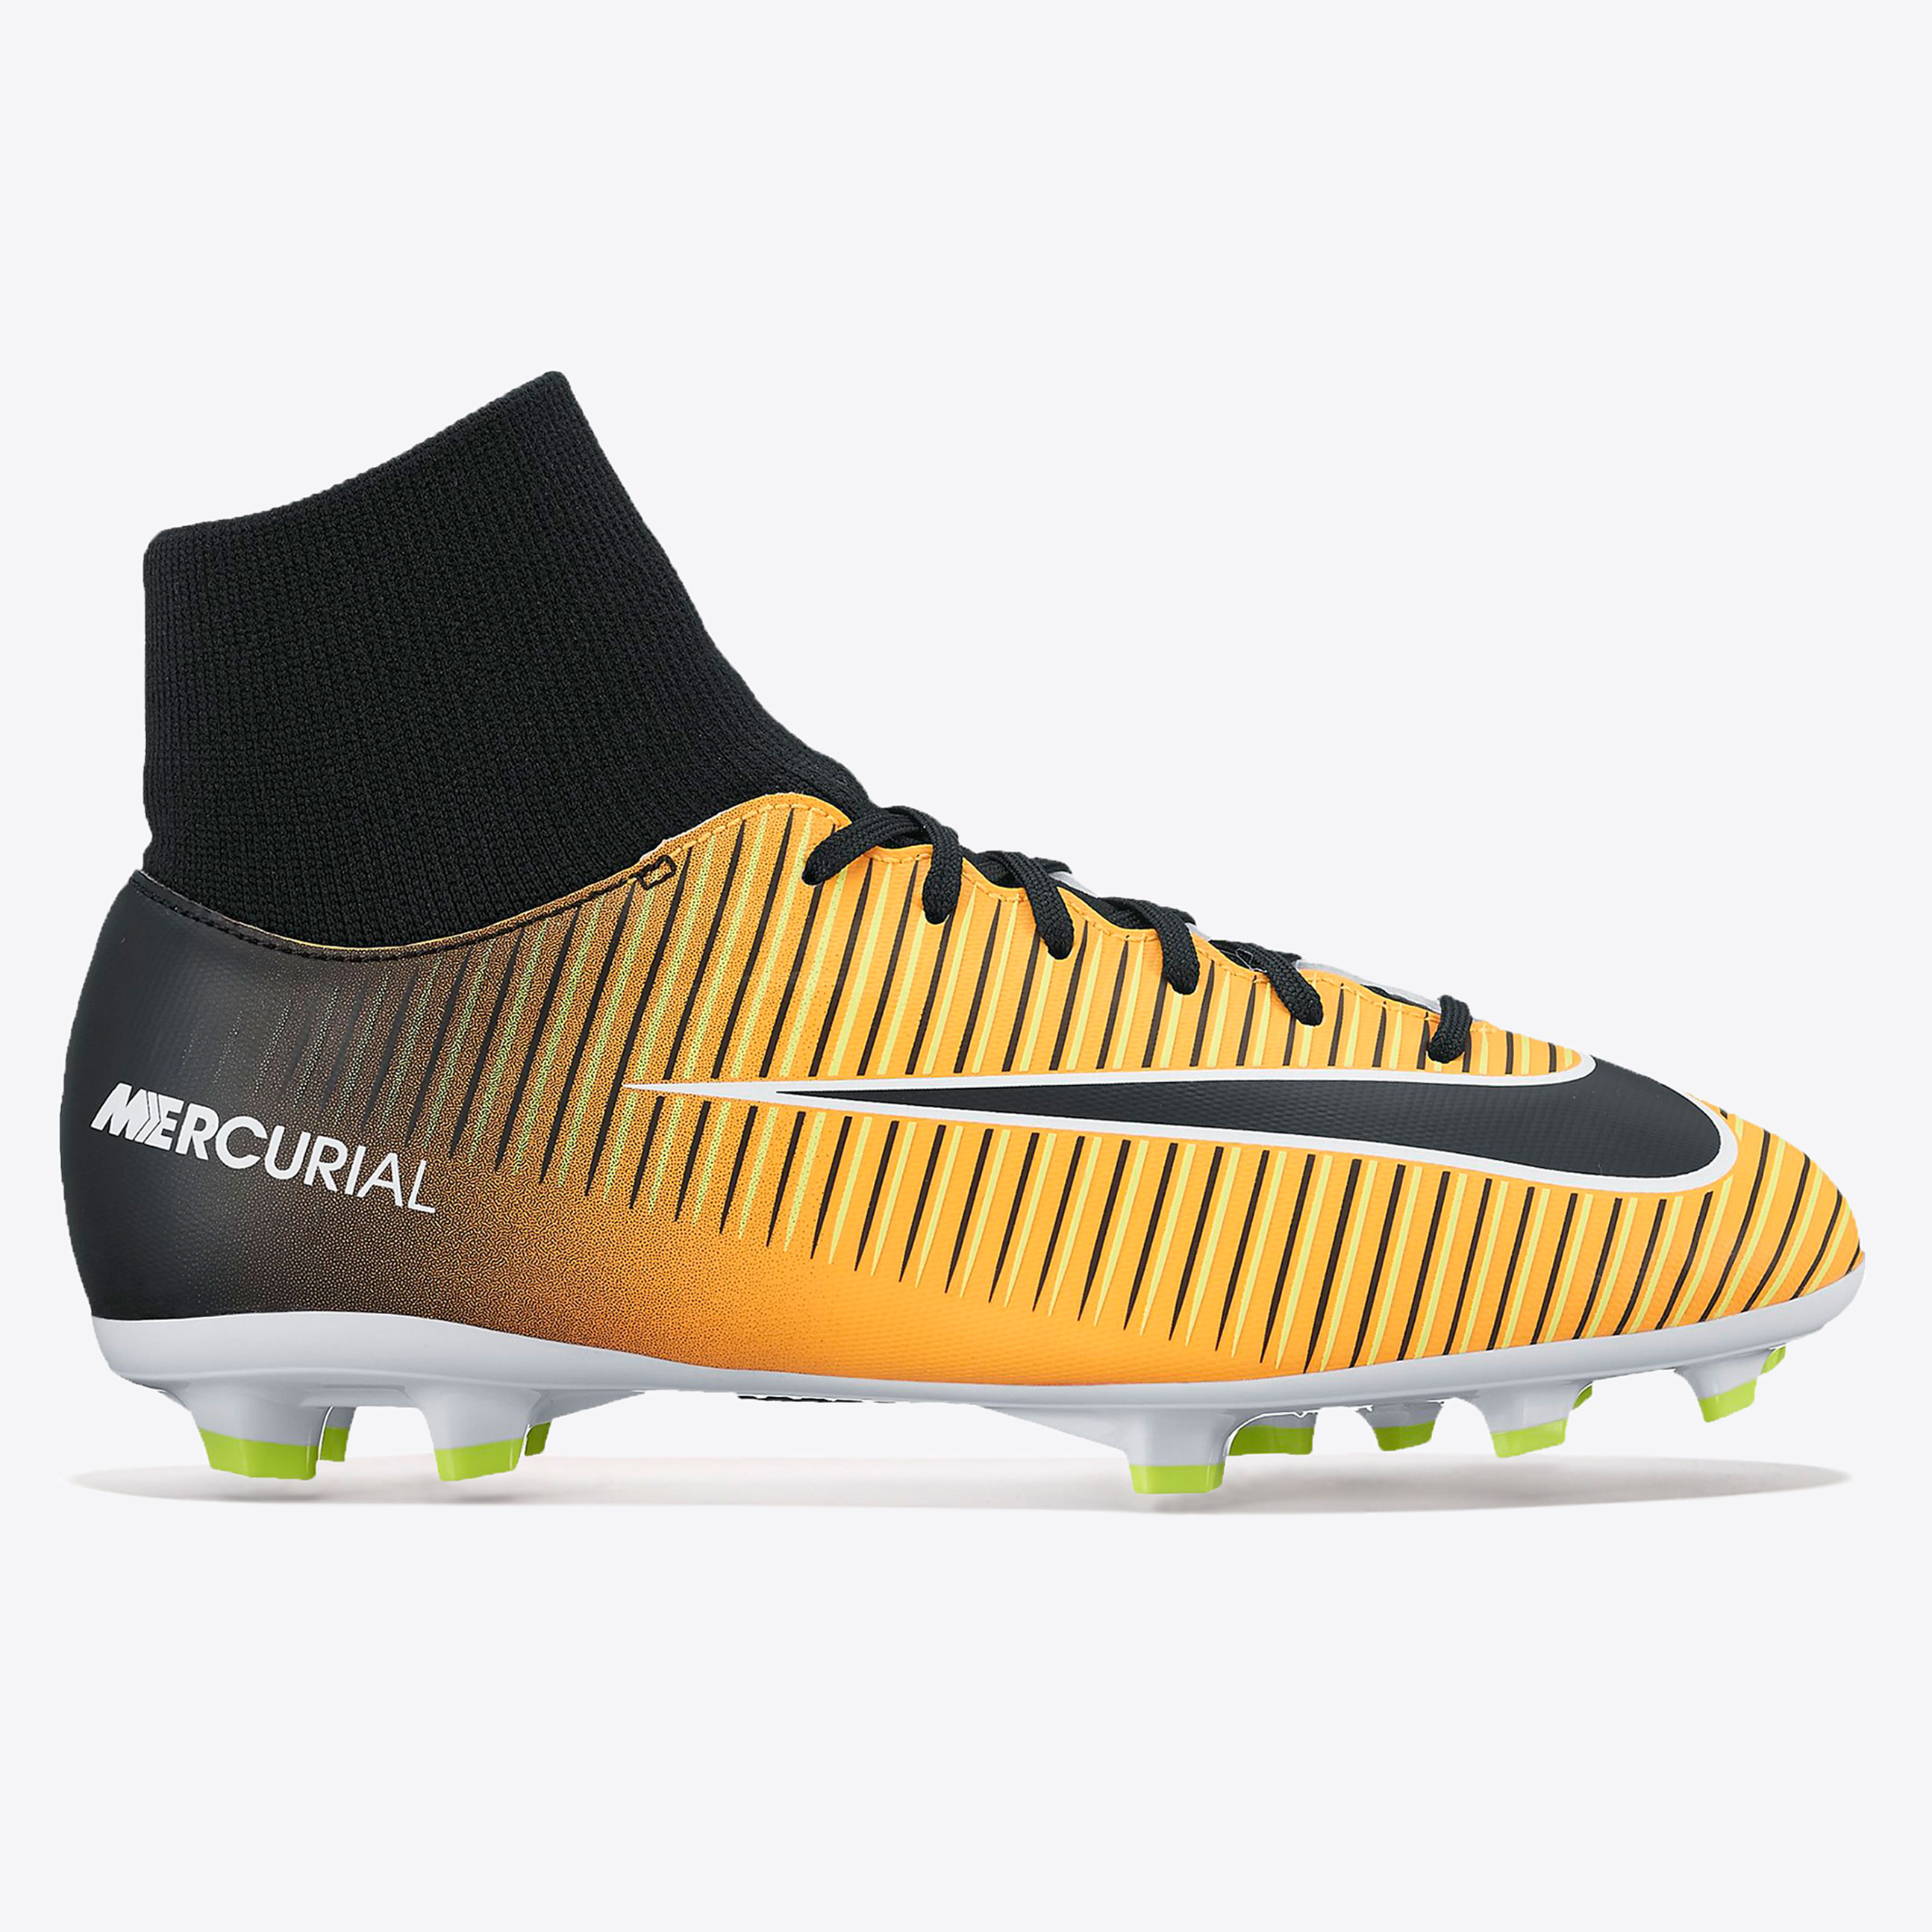 Nike Mercurial Victory VI Dynamic Fit Firm Ground Football Boots - Las